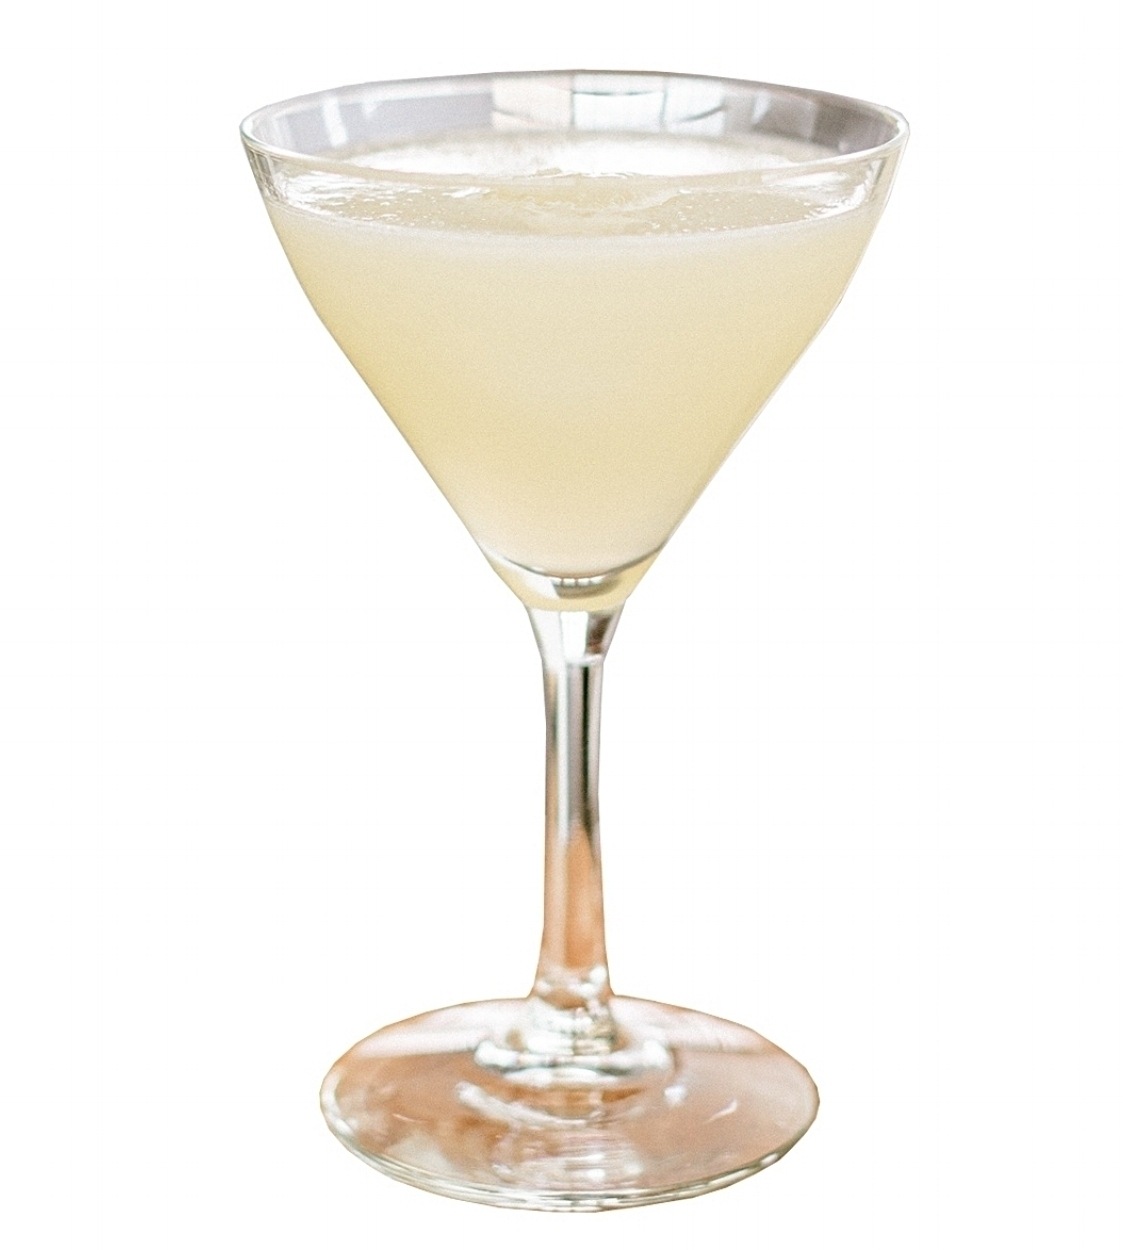 GIMLET  15ml Rich Simple Syrup* 25ml Fresh Lime Juice 60ml Norseman-Strength Gin  Shake and strain into a cocktail glass. Float one large ice cube on top.  *Rich Simple Syrup: simmer two parts sugar to one part water until clear. Be careful not to simmer too long or it will crystallize